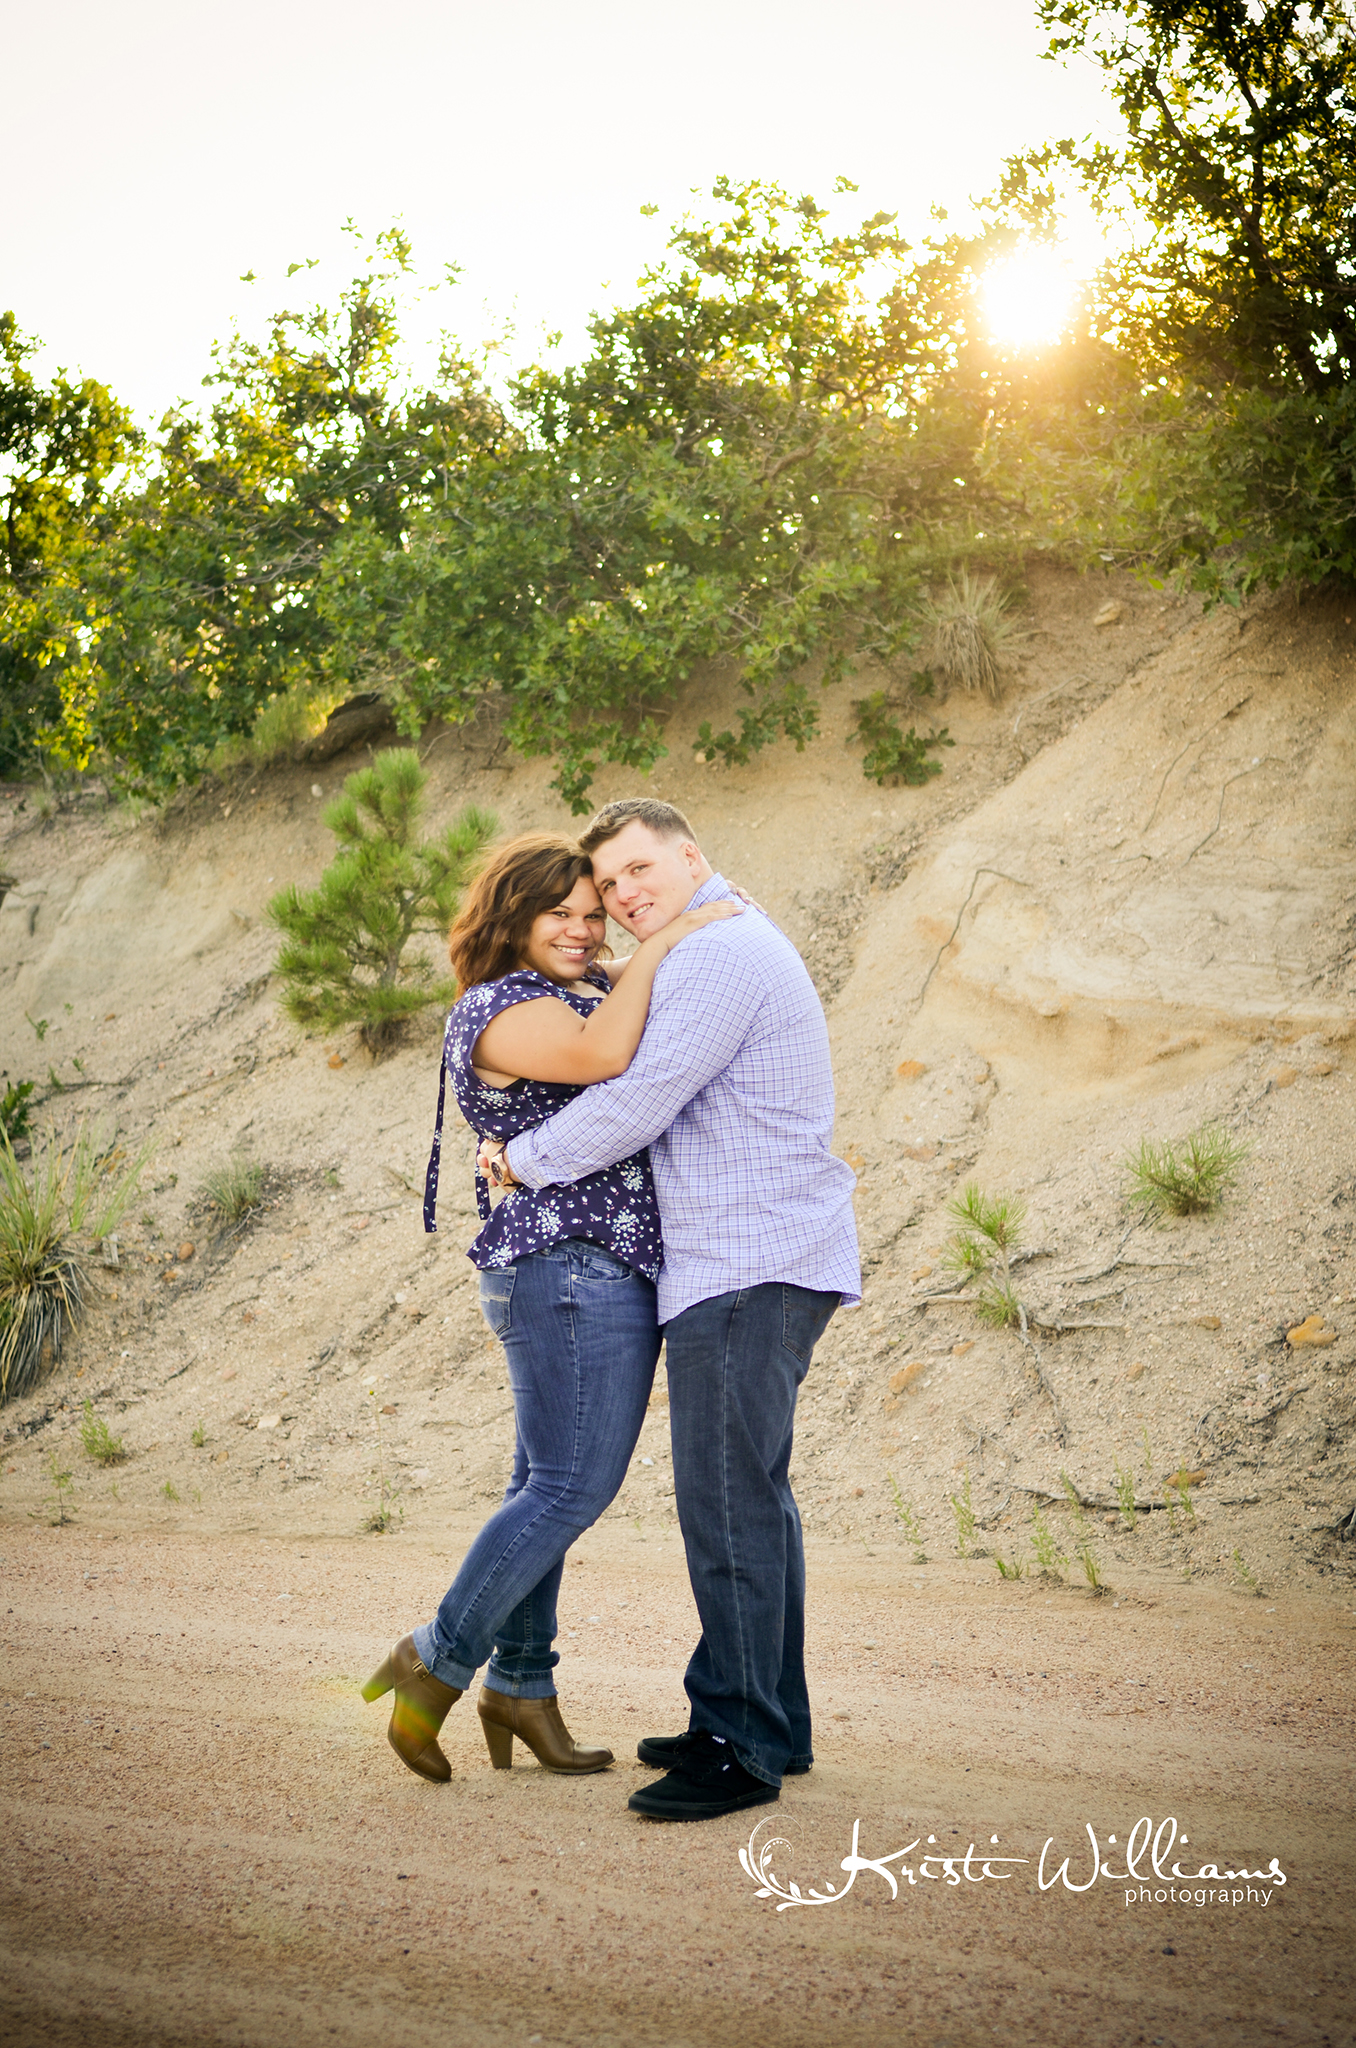 dirt road engagement couple photos colorado springs golden hour